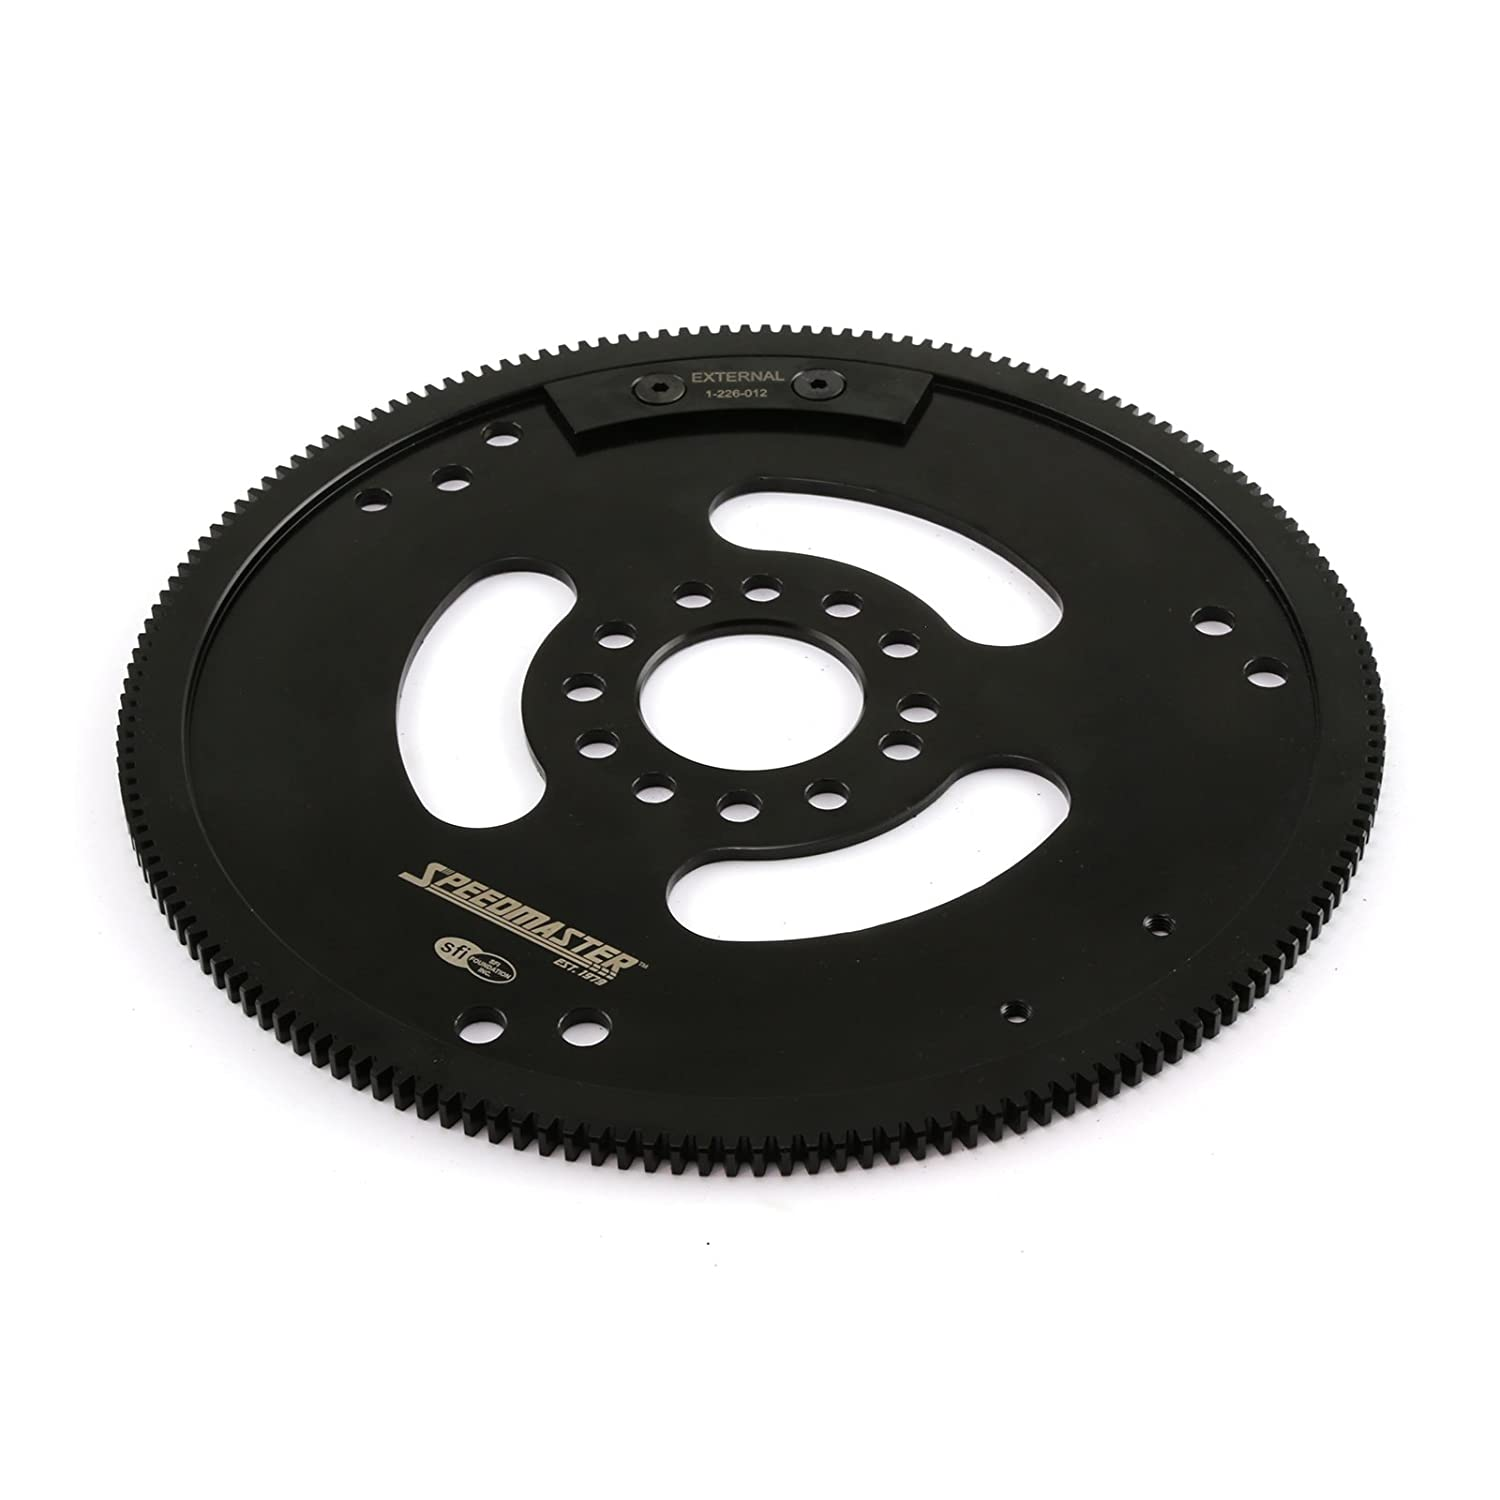 Speedmaster 1-226-012 Oldsmobile 400 425 455 2PC RMS 166 Tooth DNAⓅ Billet Black Oxide SFI Flexplate